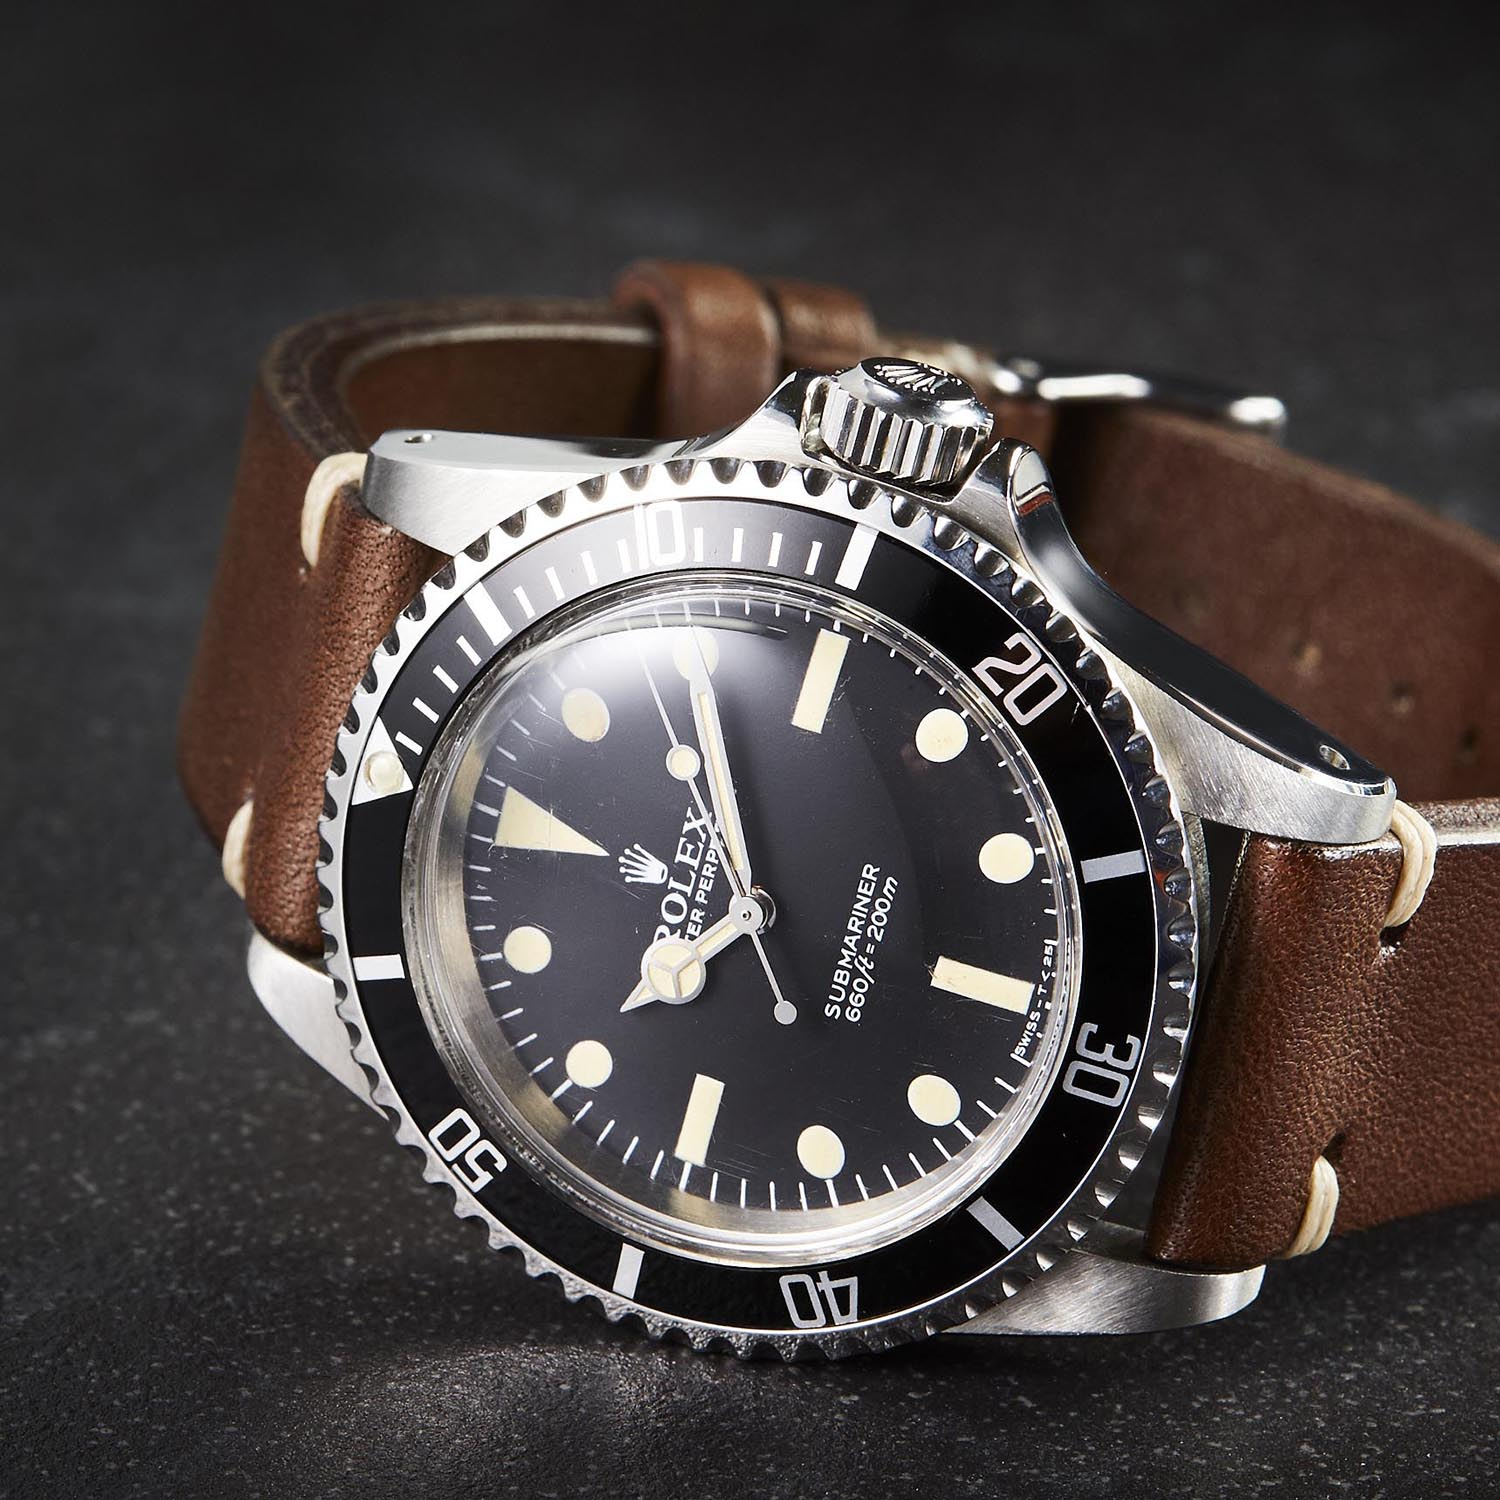 Dive Watches on Leather Straps